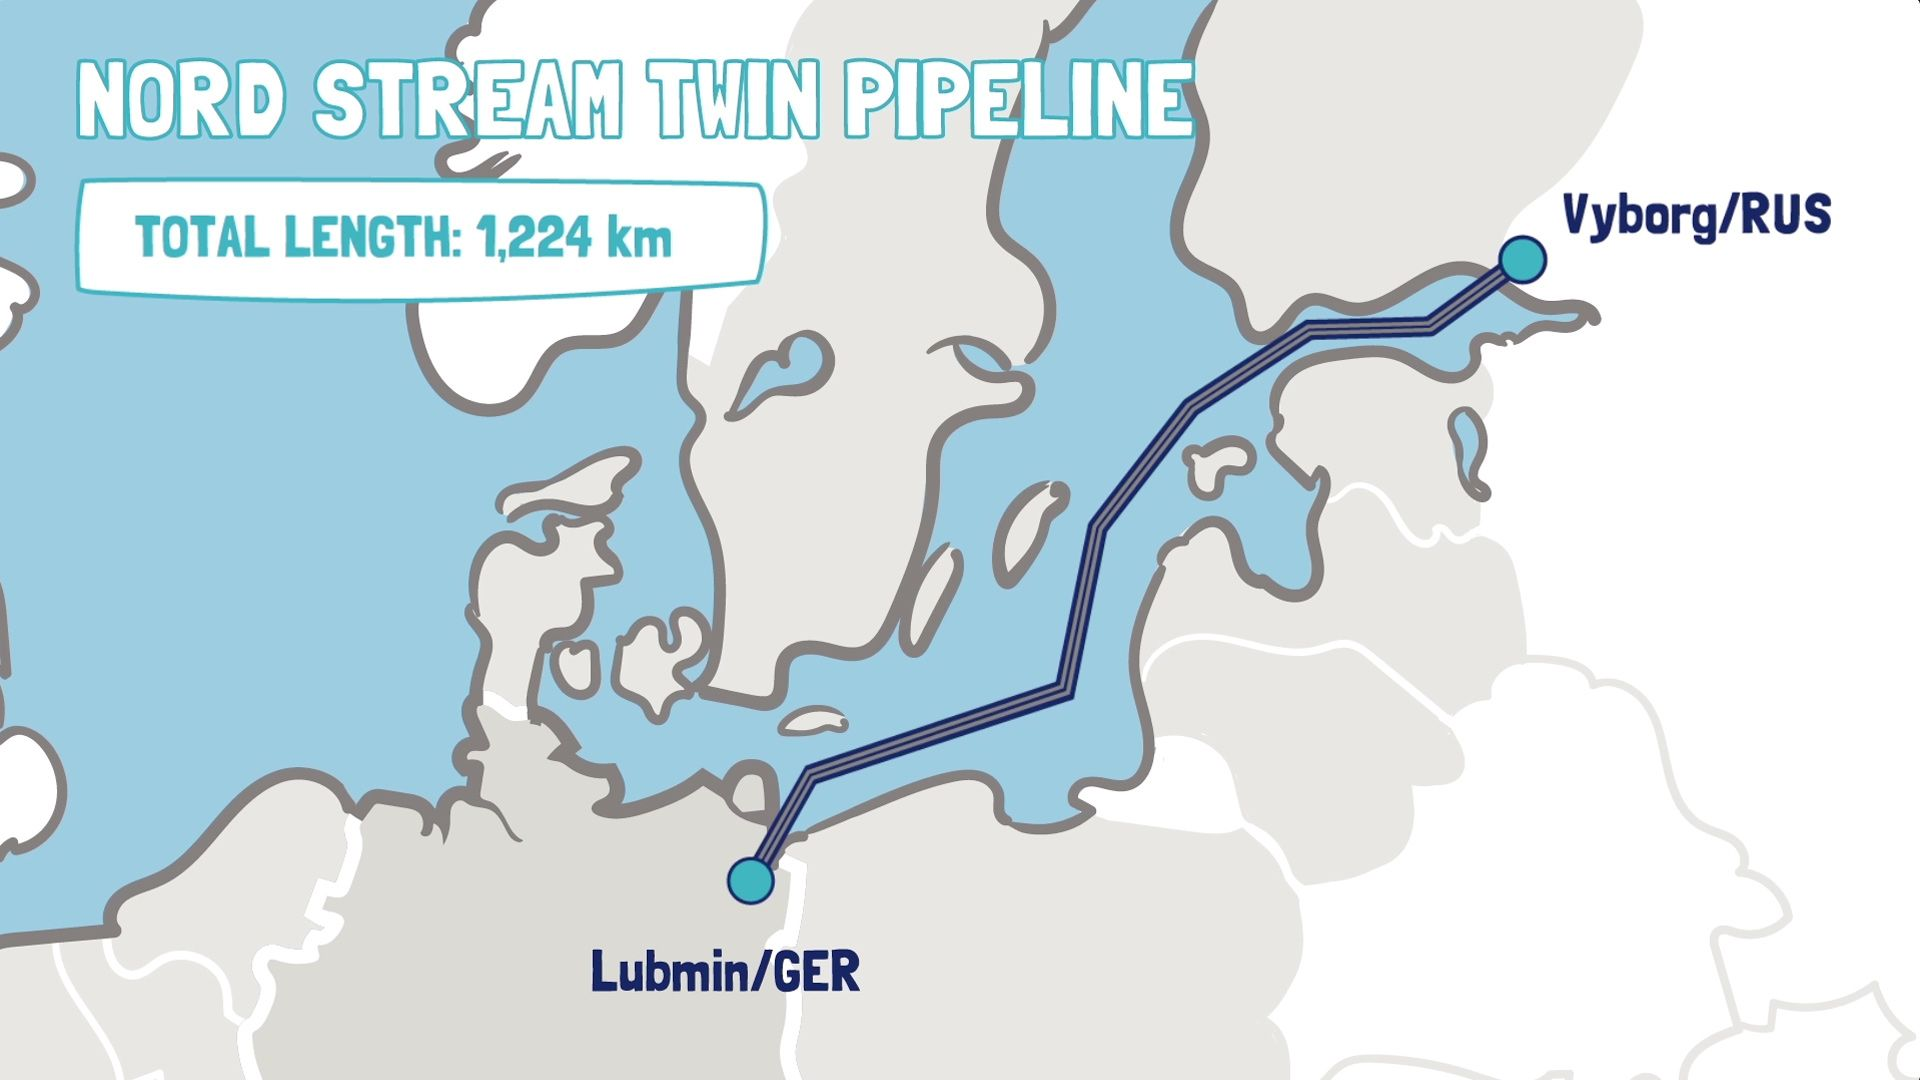 Graphic of Nord Stream Twin Pipeline